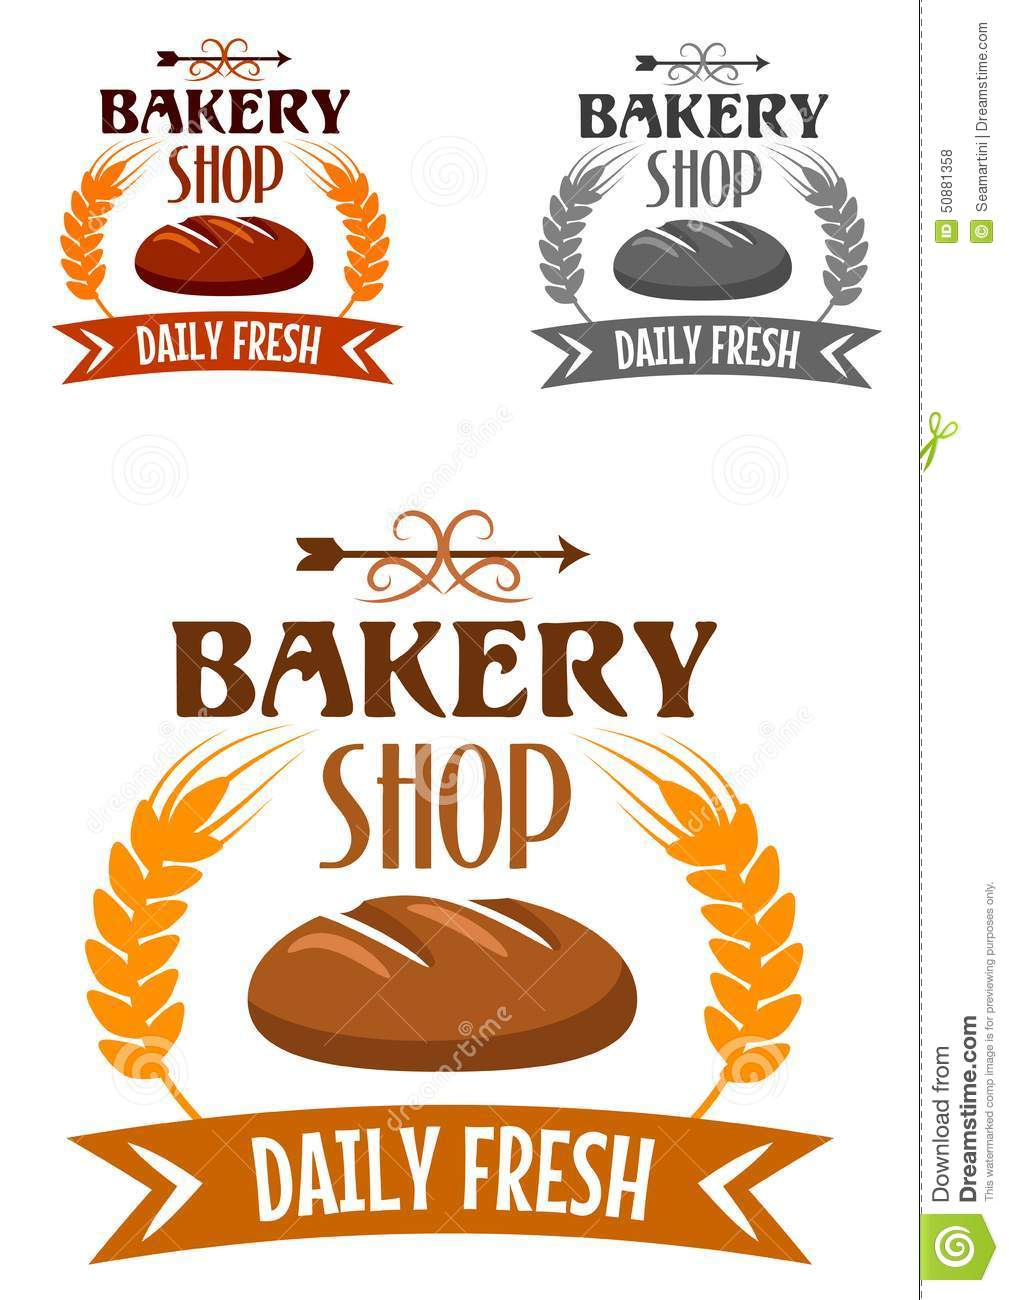 Bakery Shop Logo With Fresh Bread Stock Vector Image